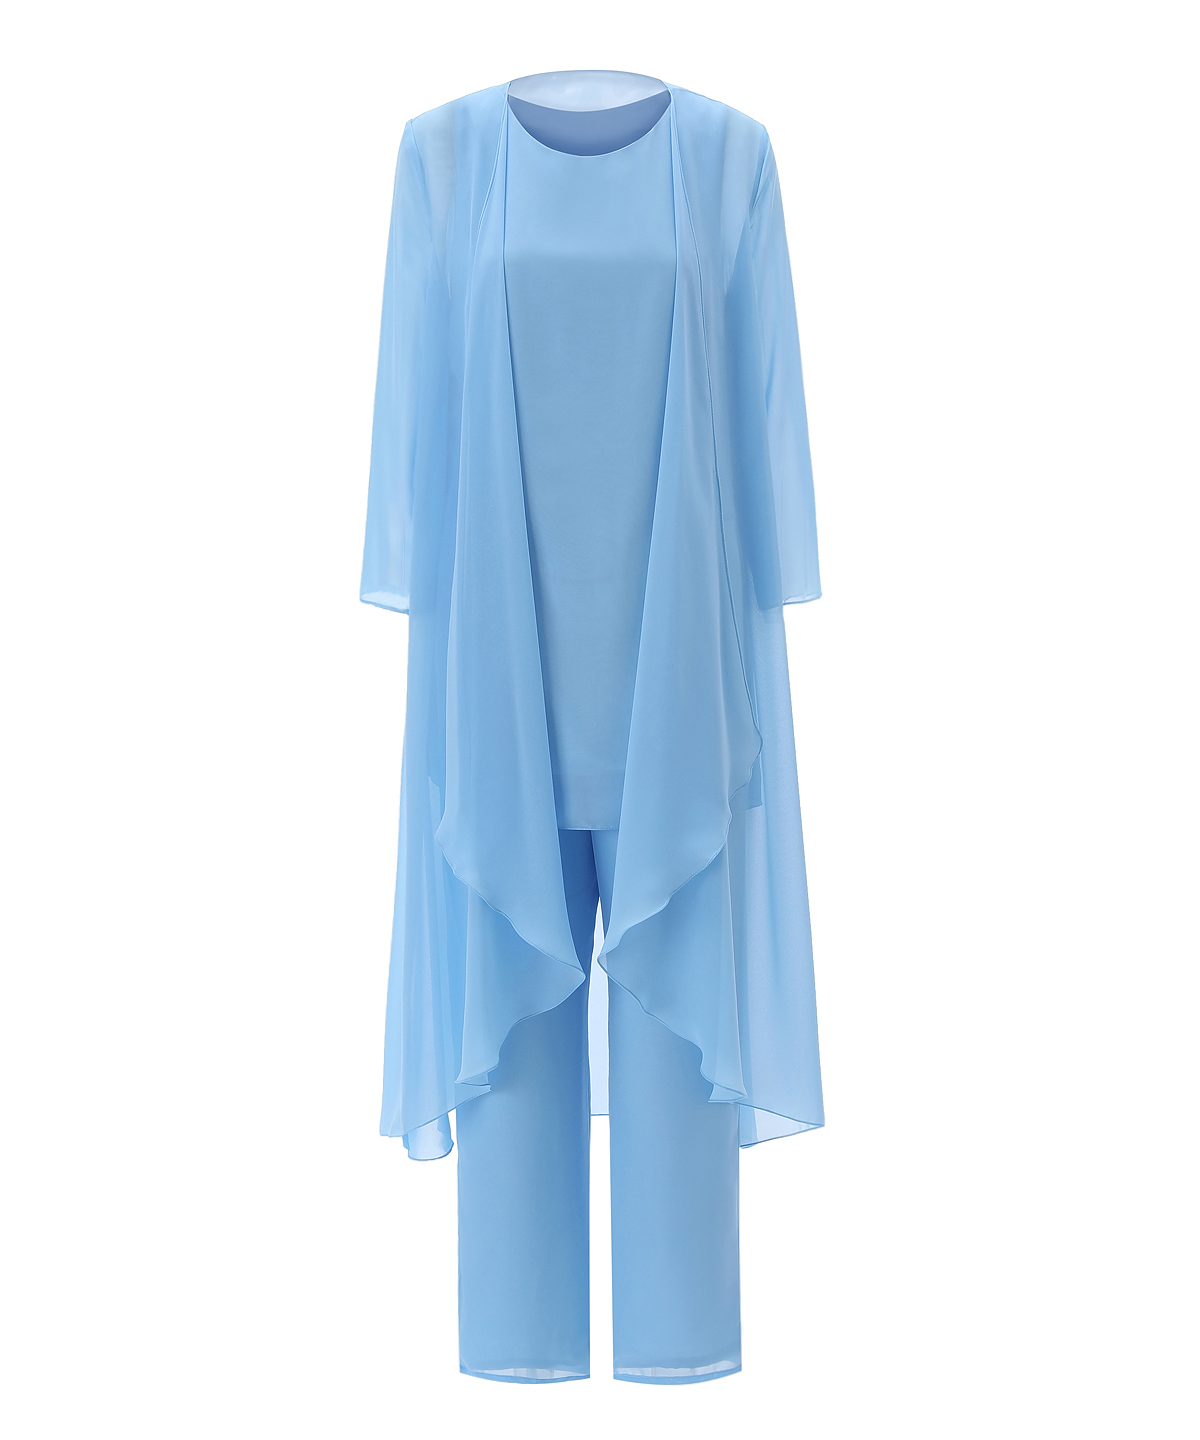 Long Sleeves Tea Length Outfit Jacket 3 Pieces Mother Of The Bride Dress Pant Suits Womens Chiffon Solid Simple Blue Set Suit